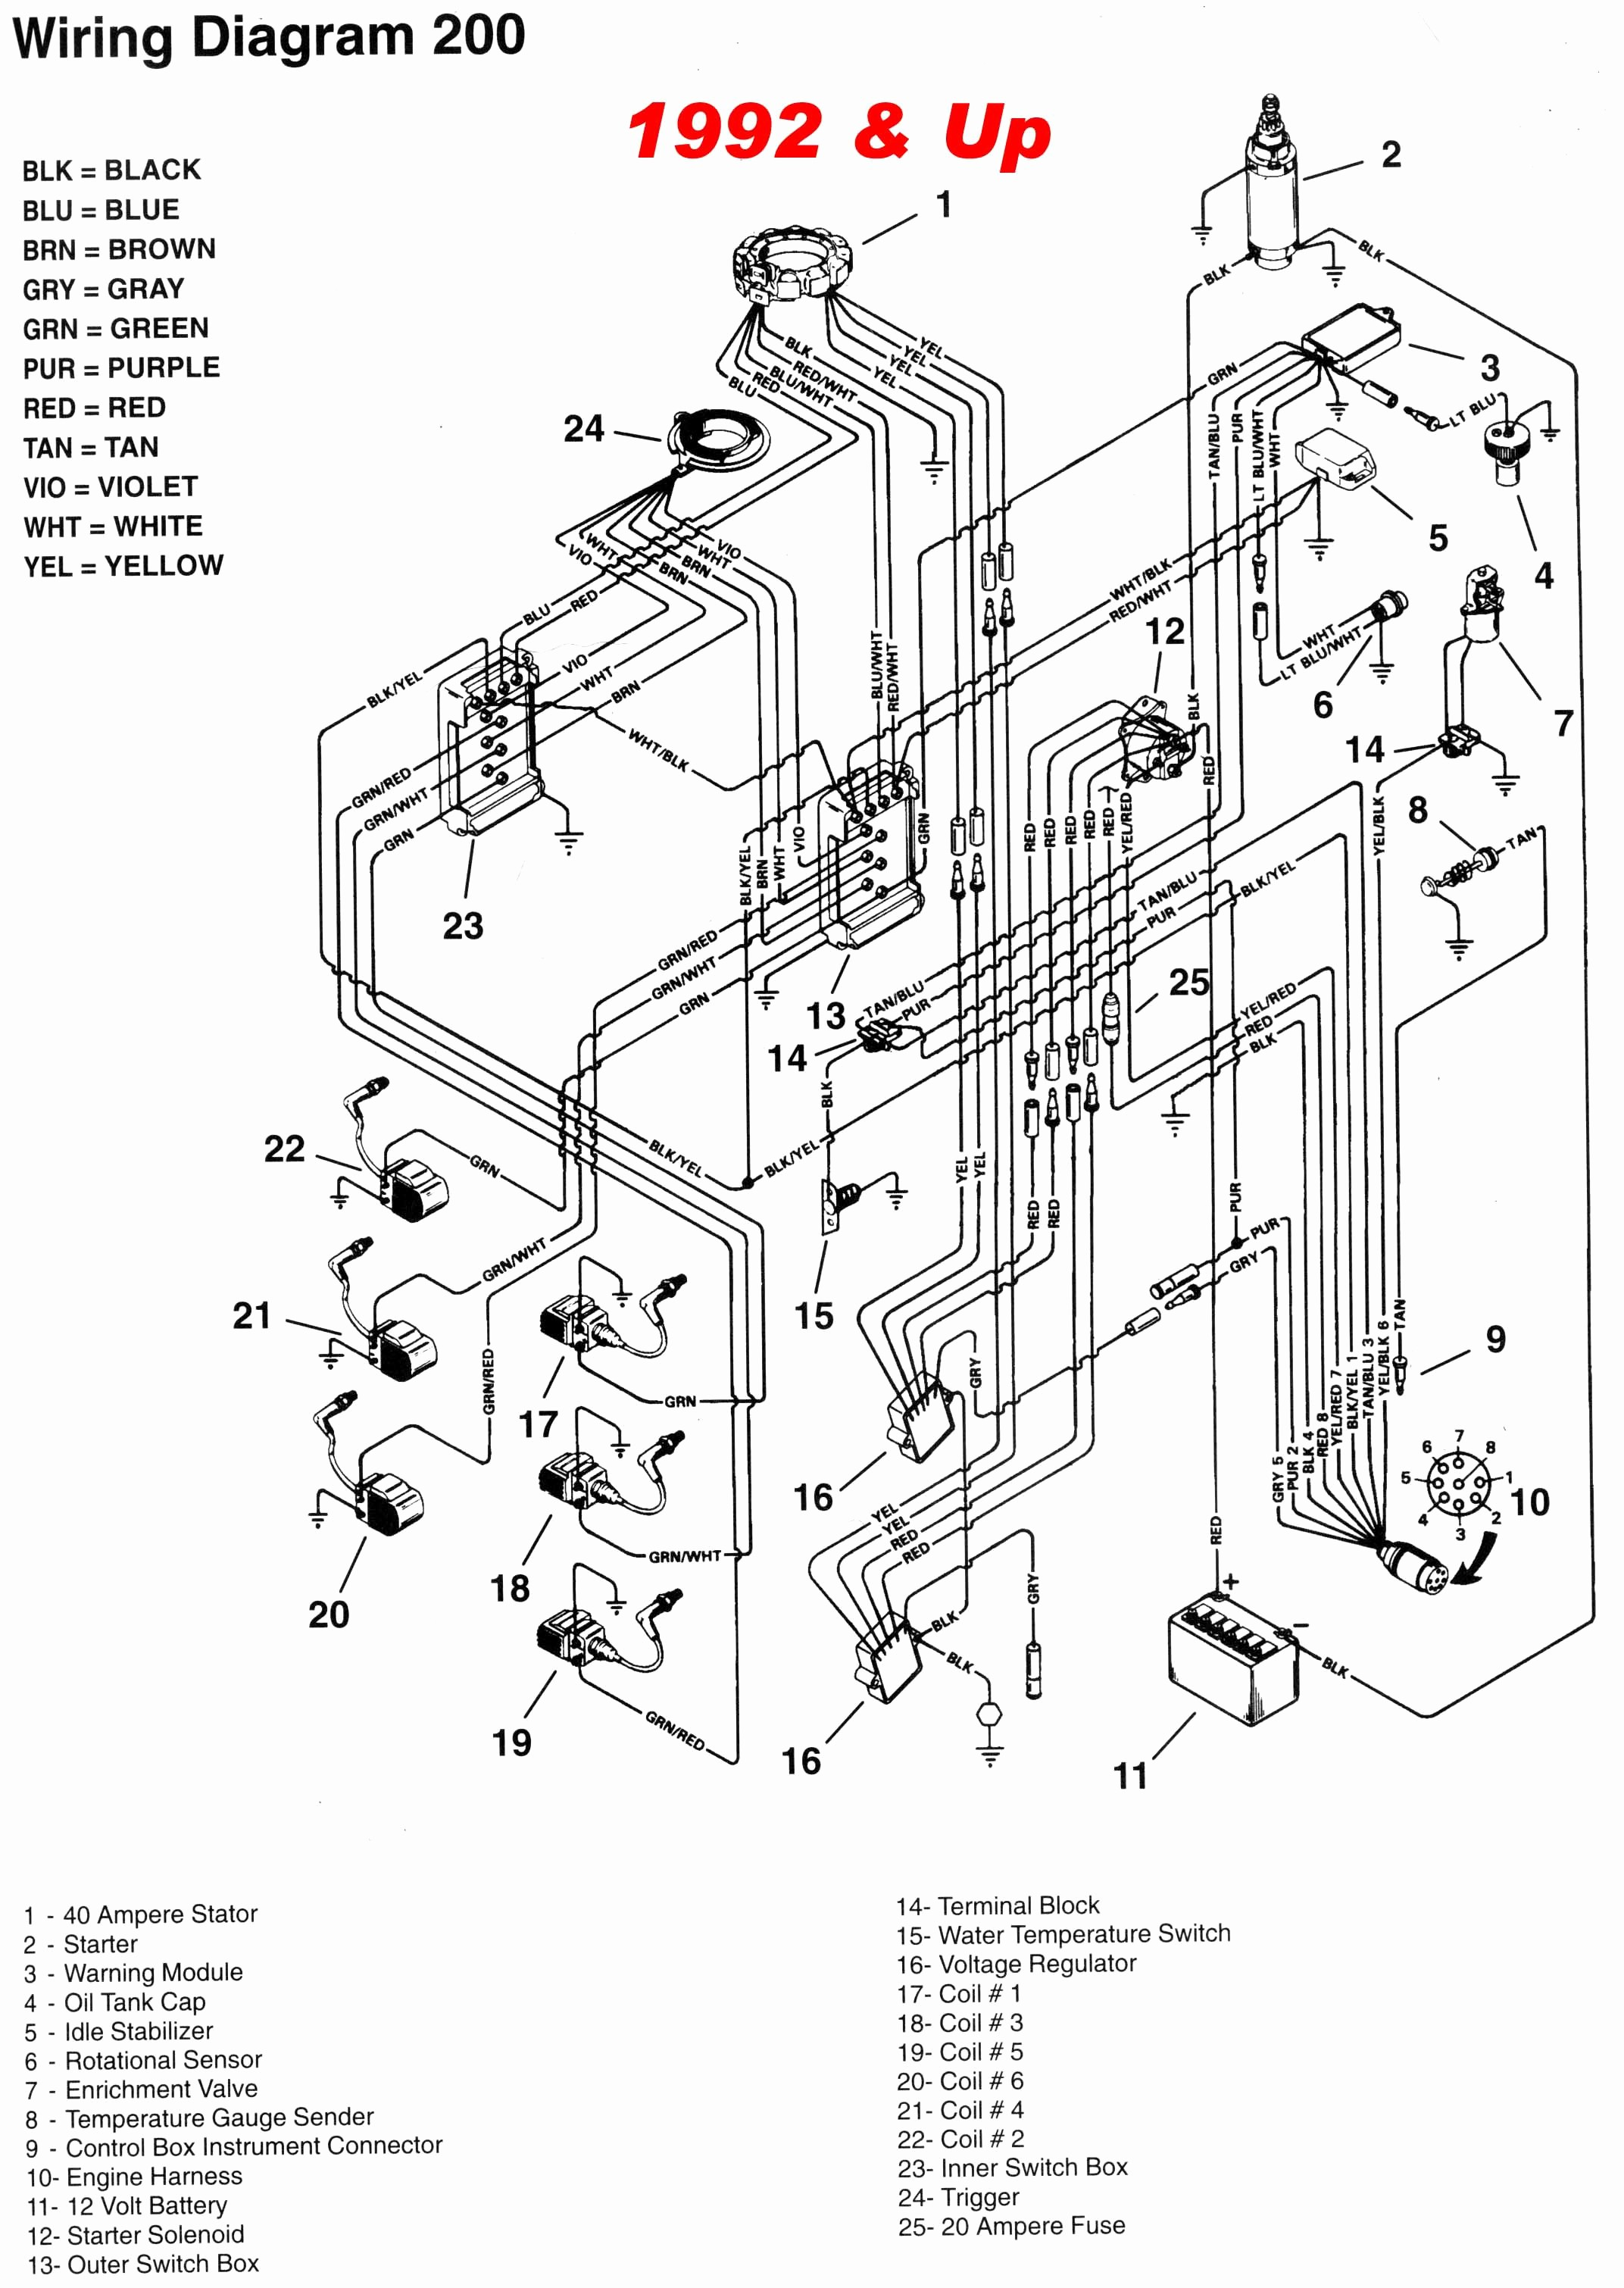 2000 Vw Cooling Diagram Wiring Will Be A Thing Epiphone Sheraton Ii Computer Online Schematics Rh Delvato Co Jetta Fan